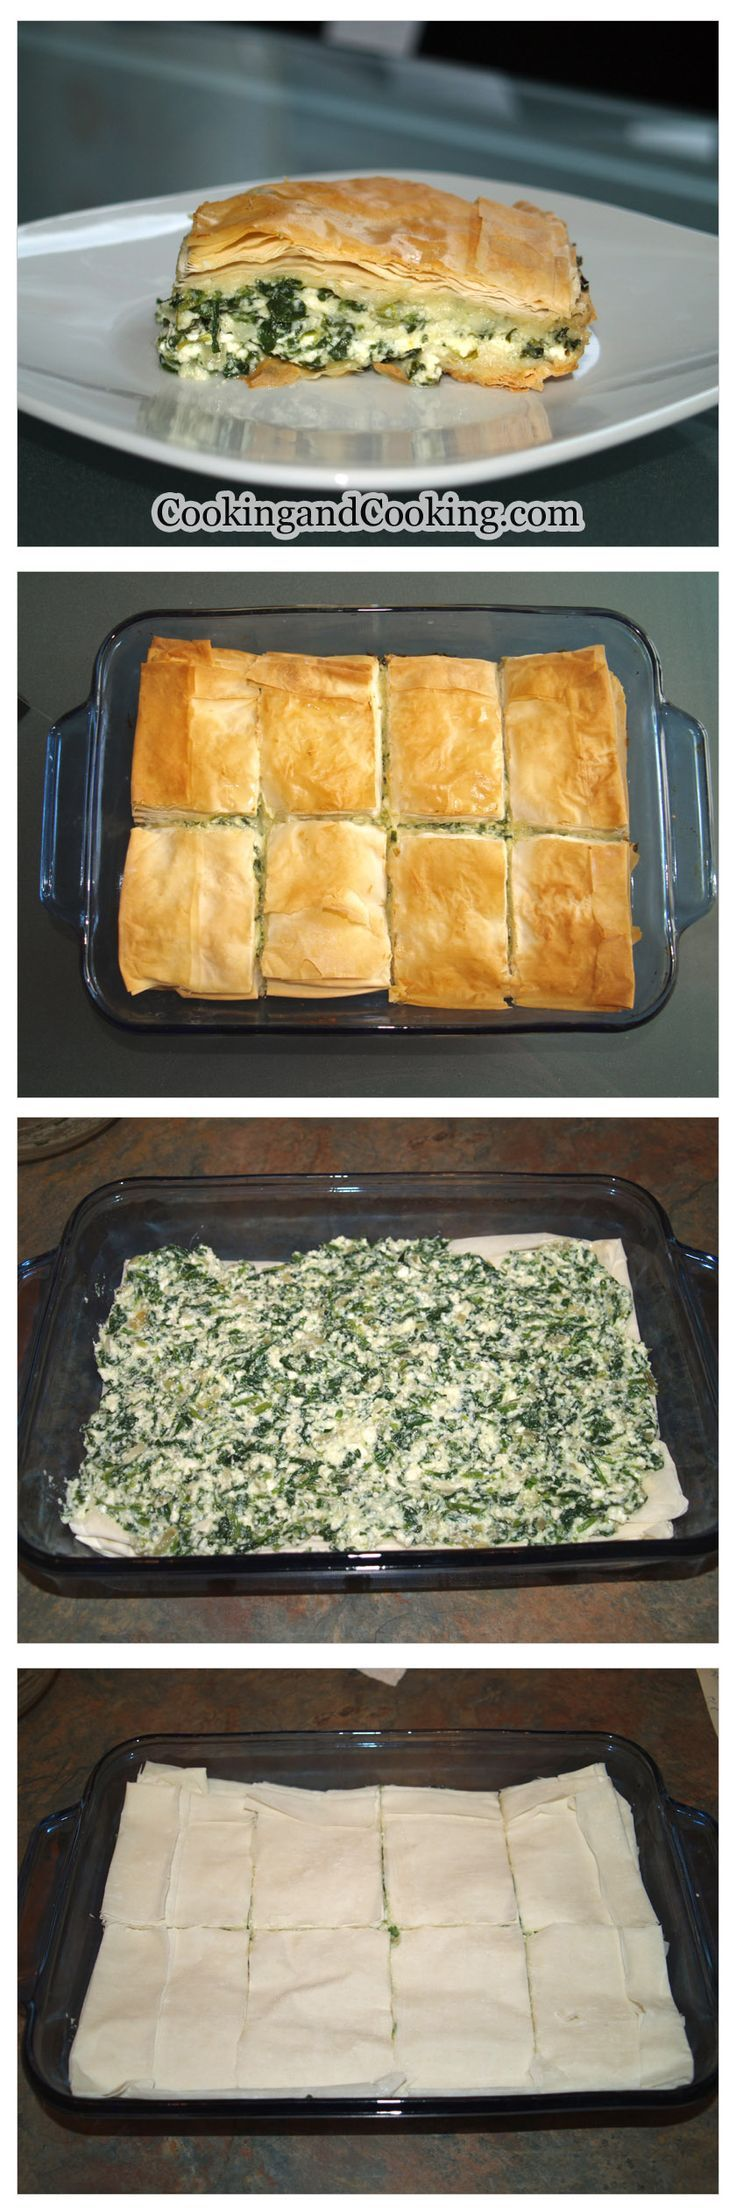 Greek Spinach Pie Recipe. An easy one I plan to try.